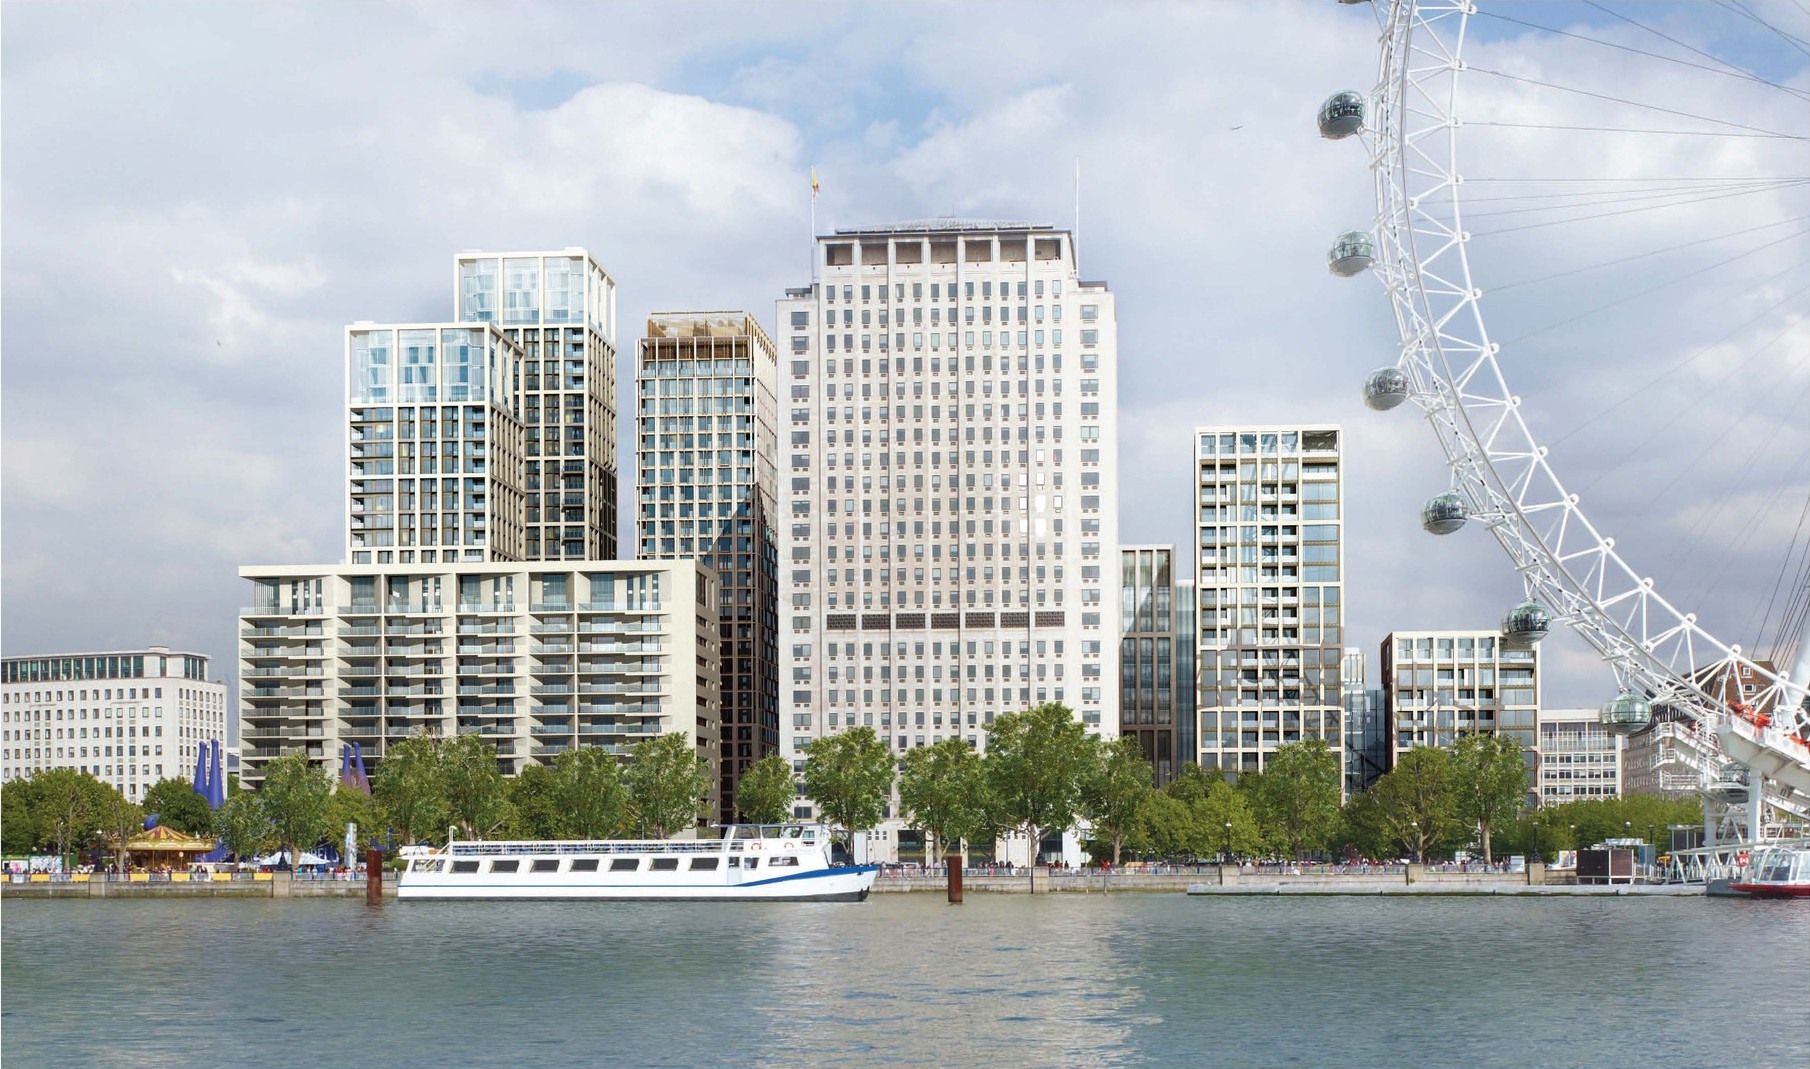 London's Shell Centre Awarded Planning Permission, Courtesy of The Canary Wharf and Qatari Diar Groups